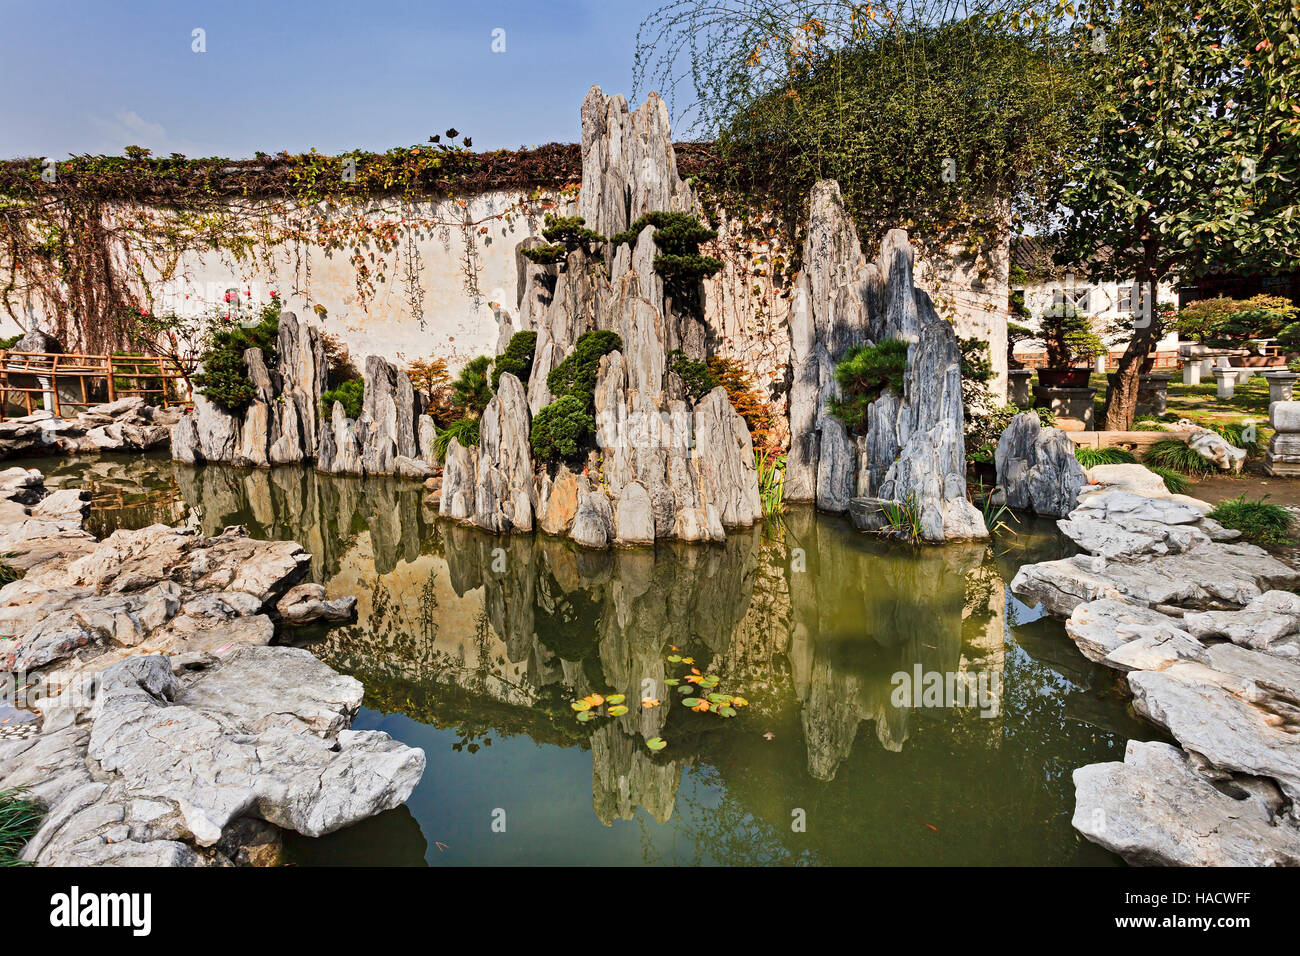 Mini rock formation from still water pond in a public garden of ...